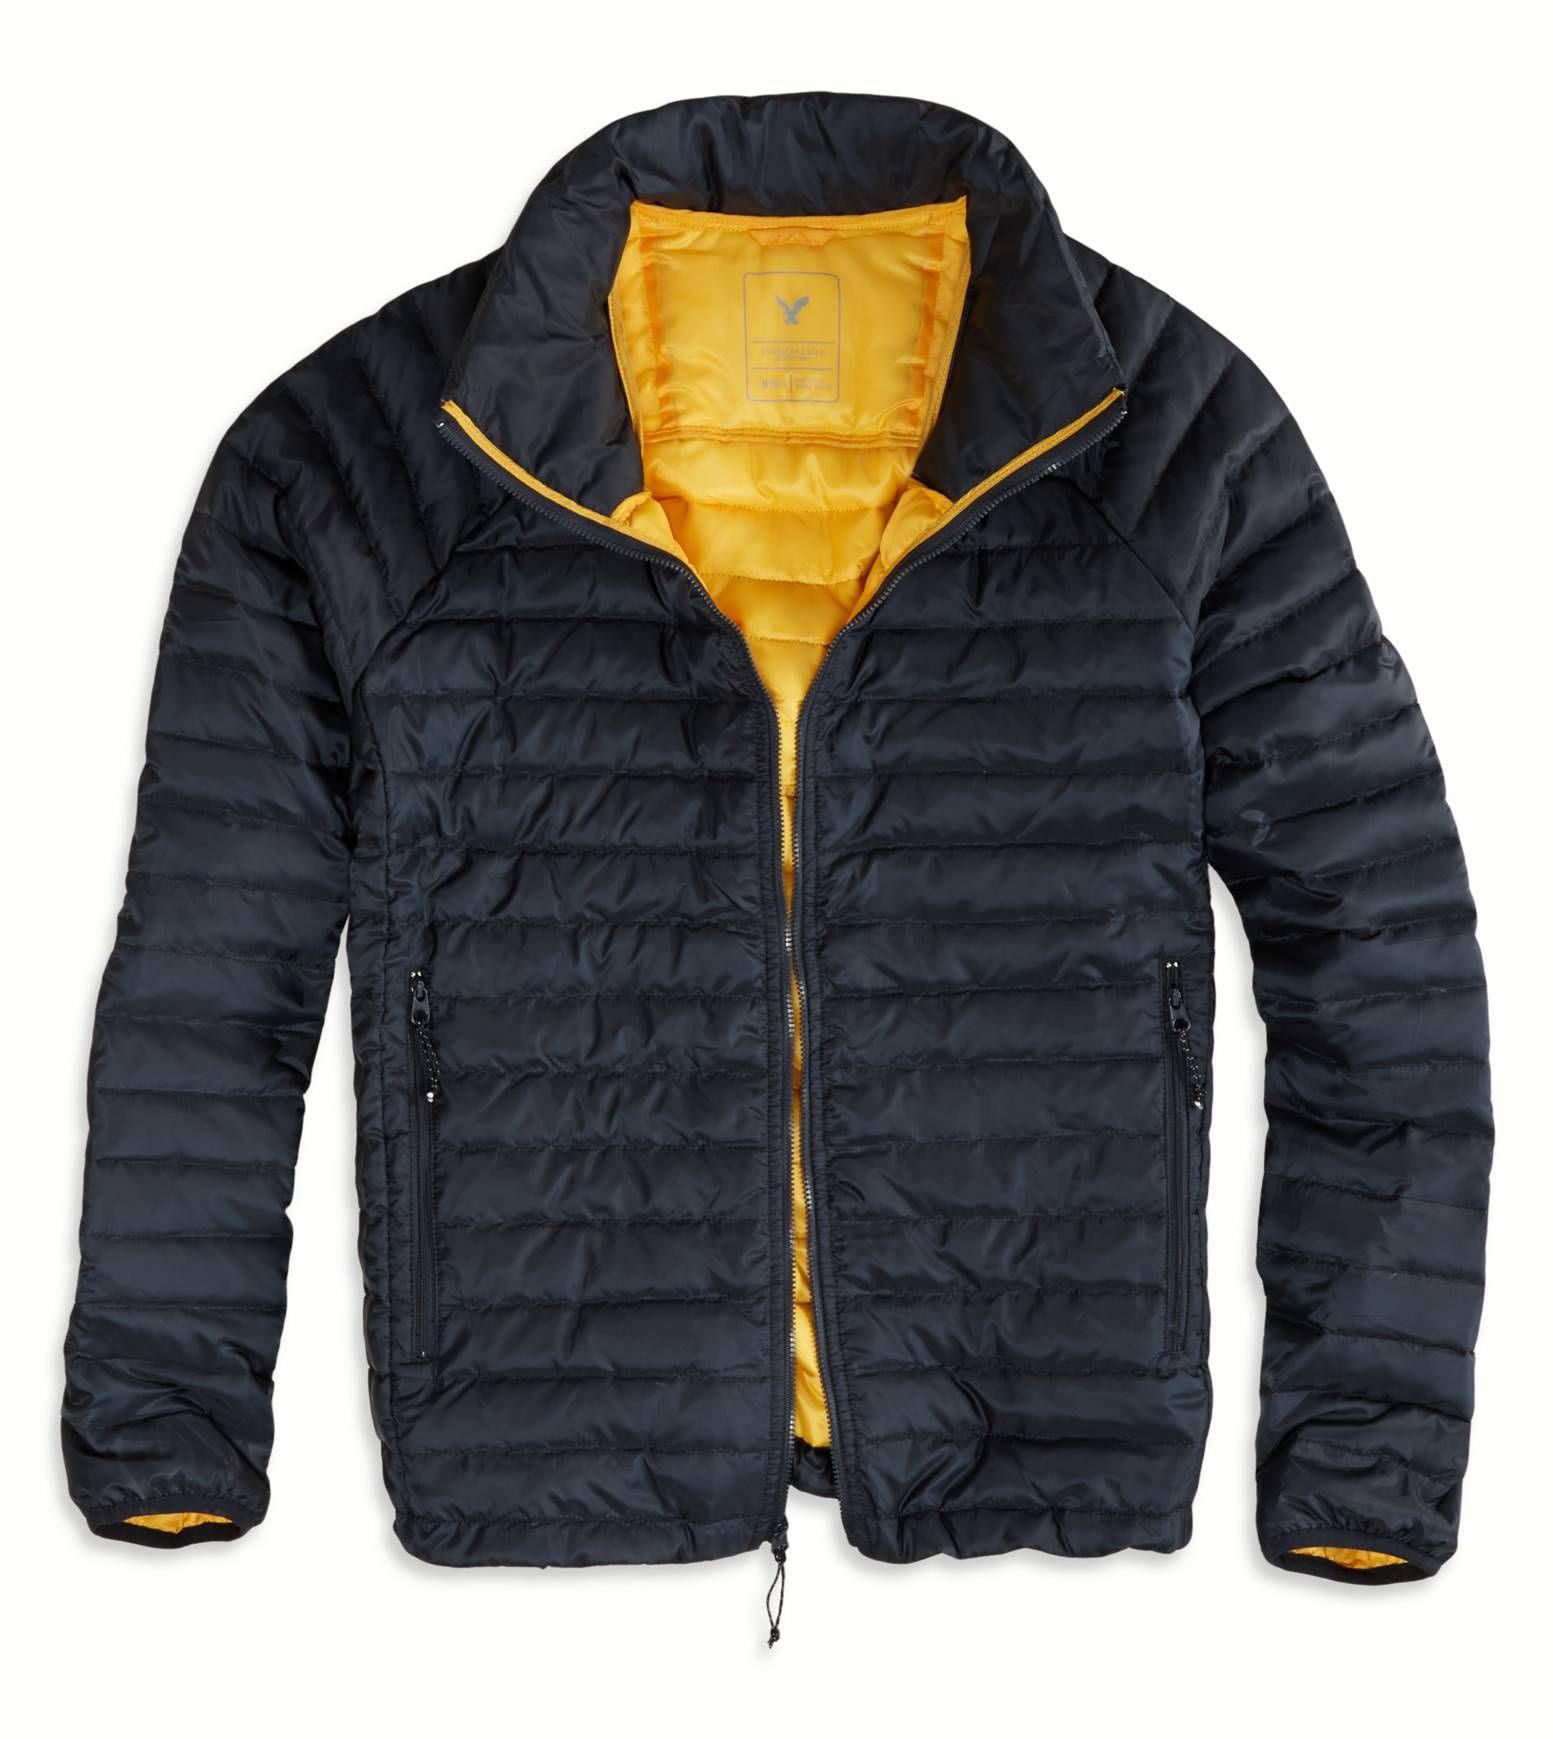 American Eagle Lightweight Puffer Jacket Navy 55 97 Mens Outfitters Women Jeans Clothes For Women [ 1739 x 1553 Pixel ]